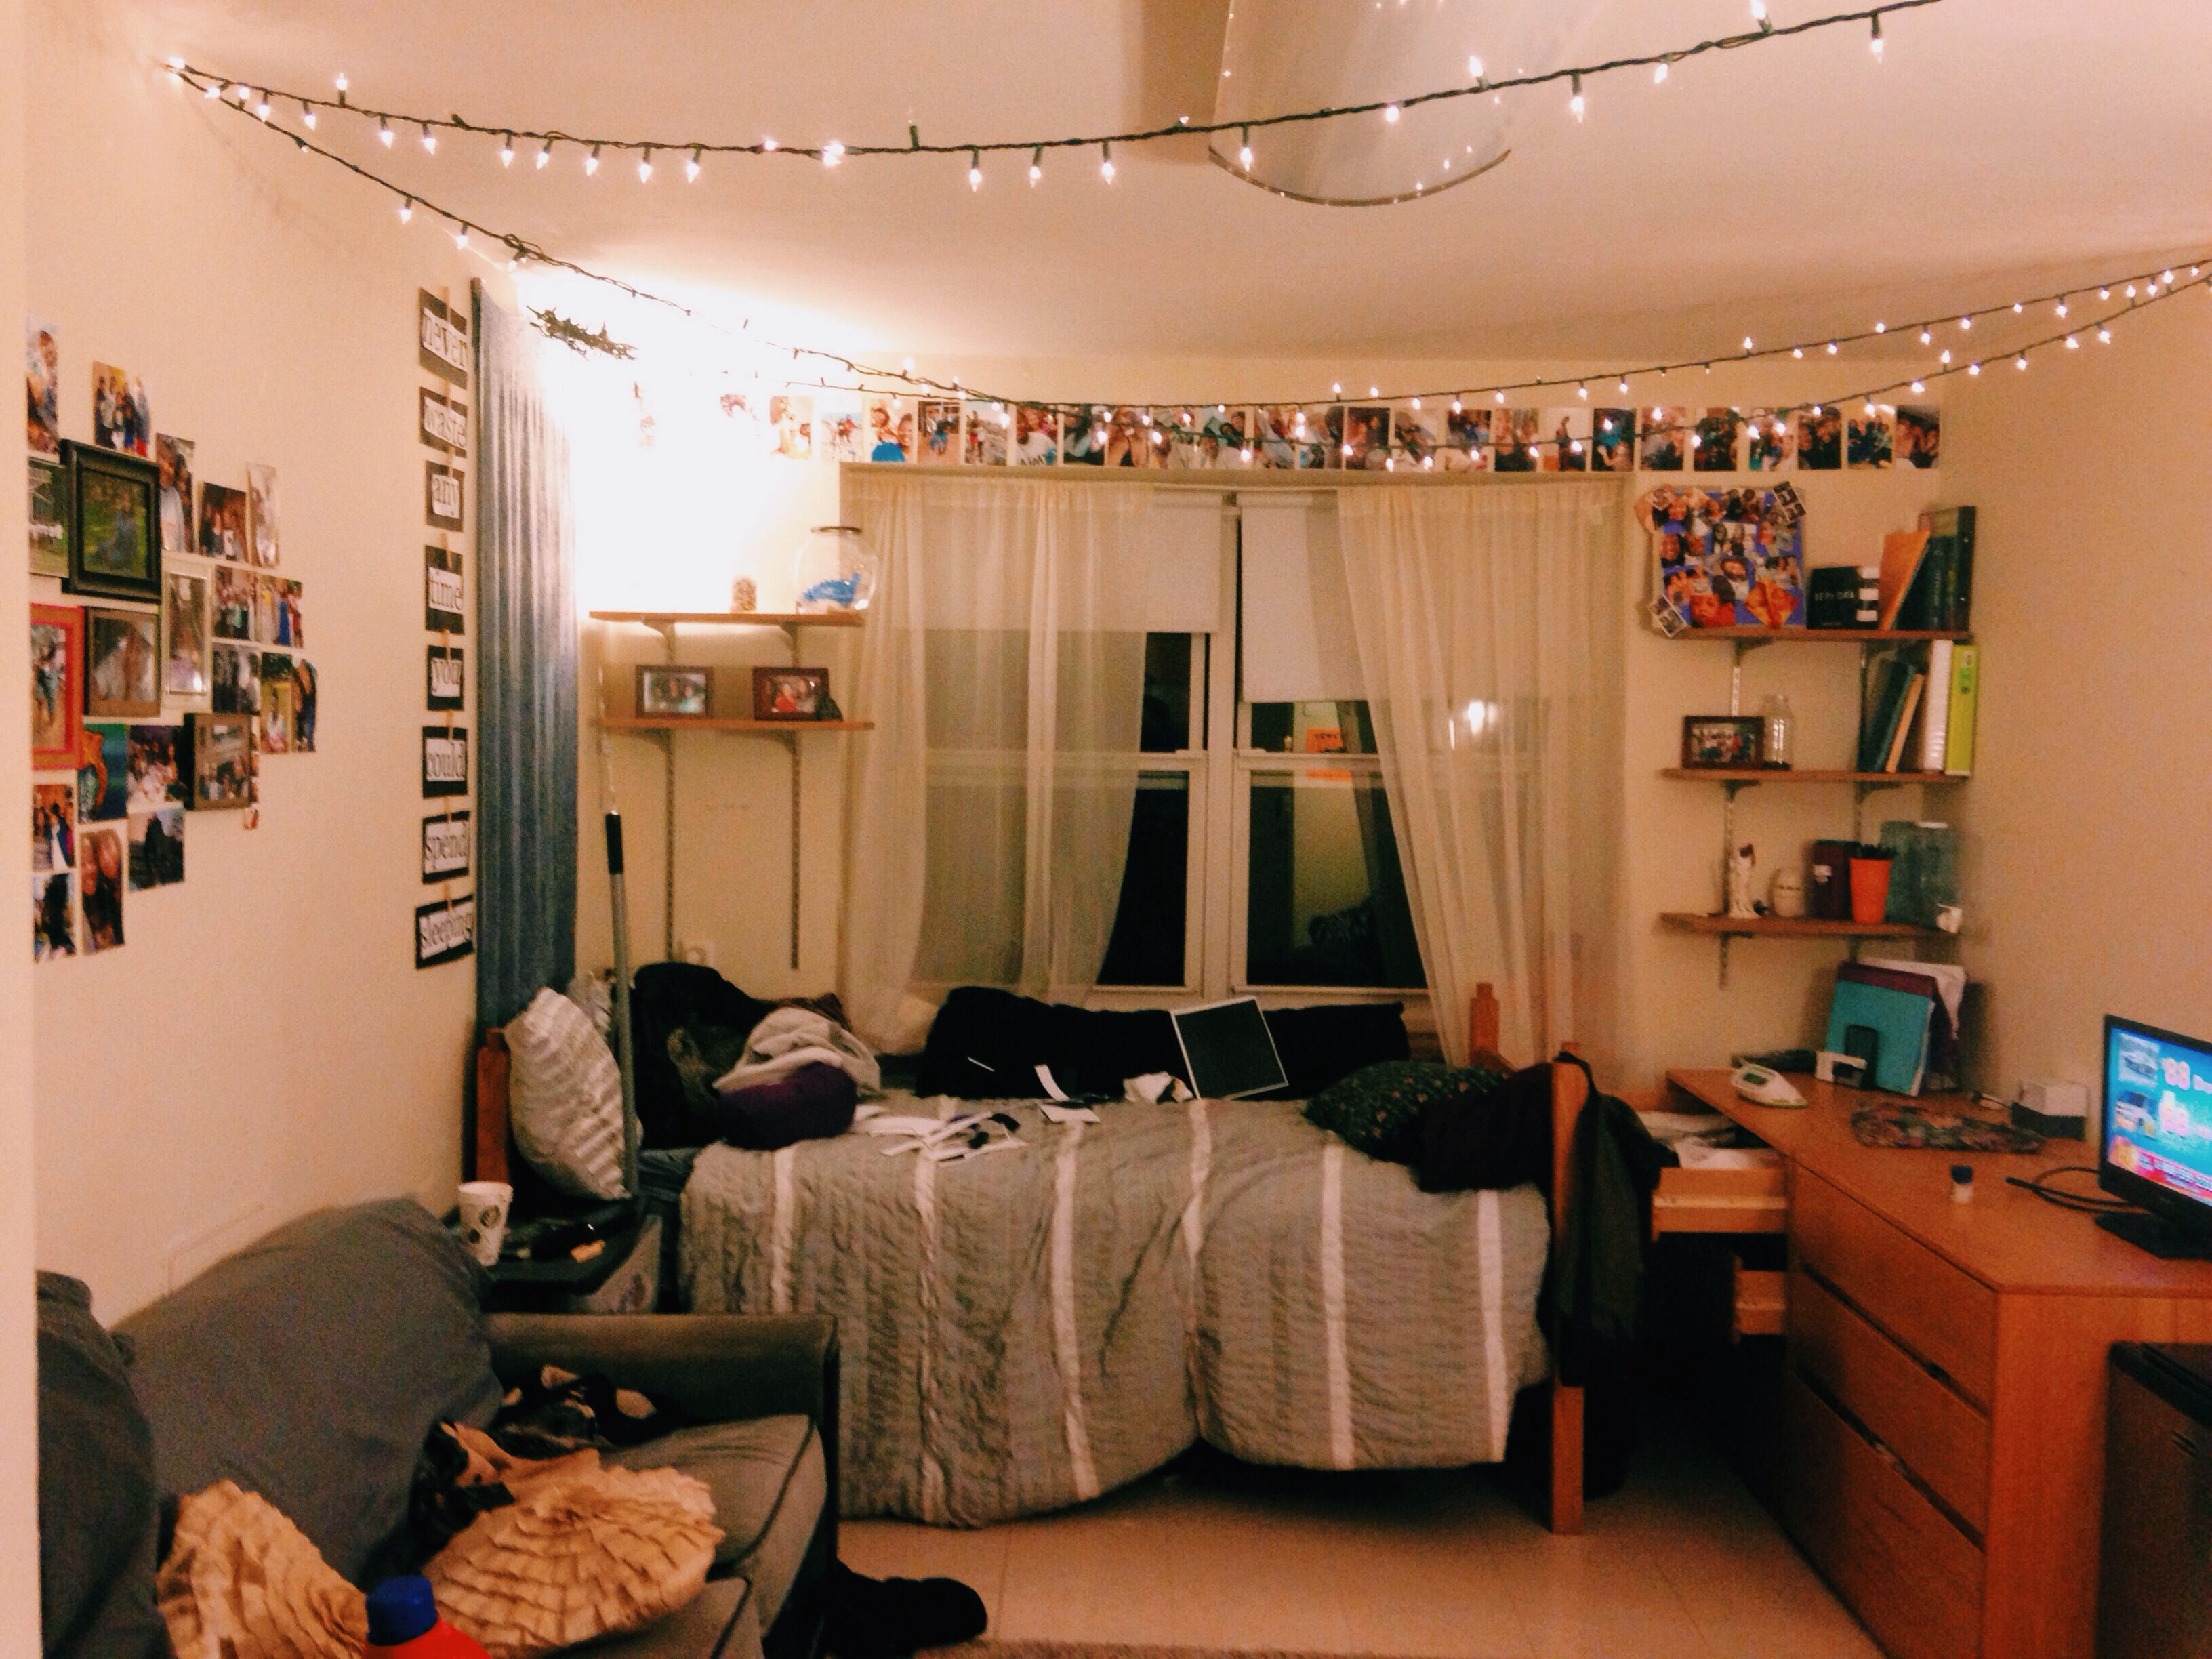 best 25+ dorm room lighting ideas on pinterest | college dorm